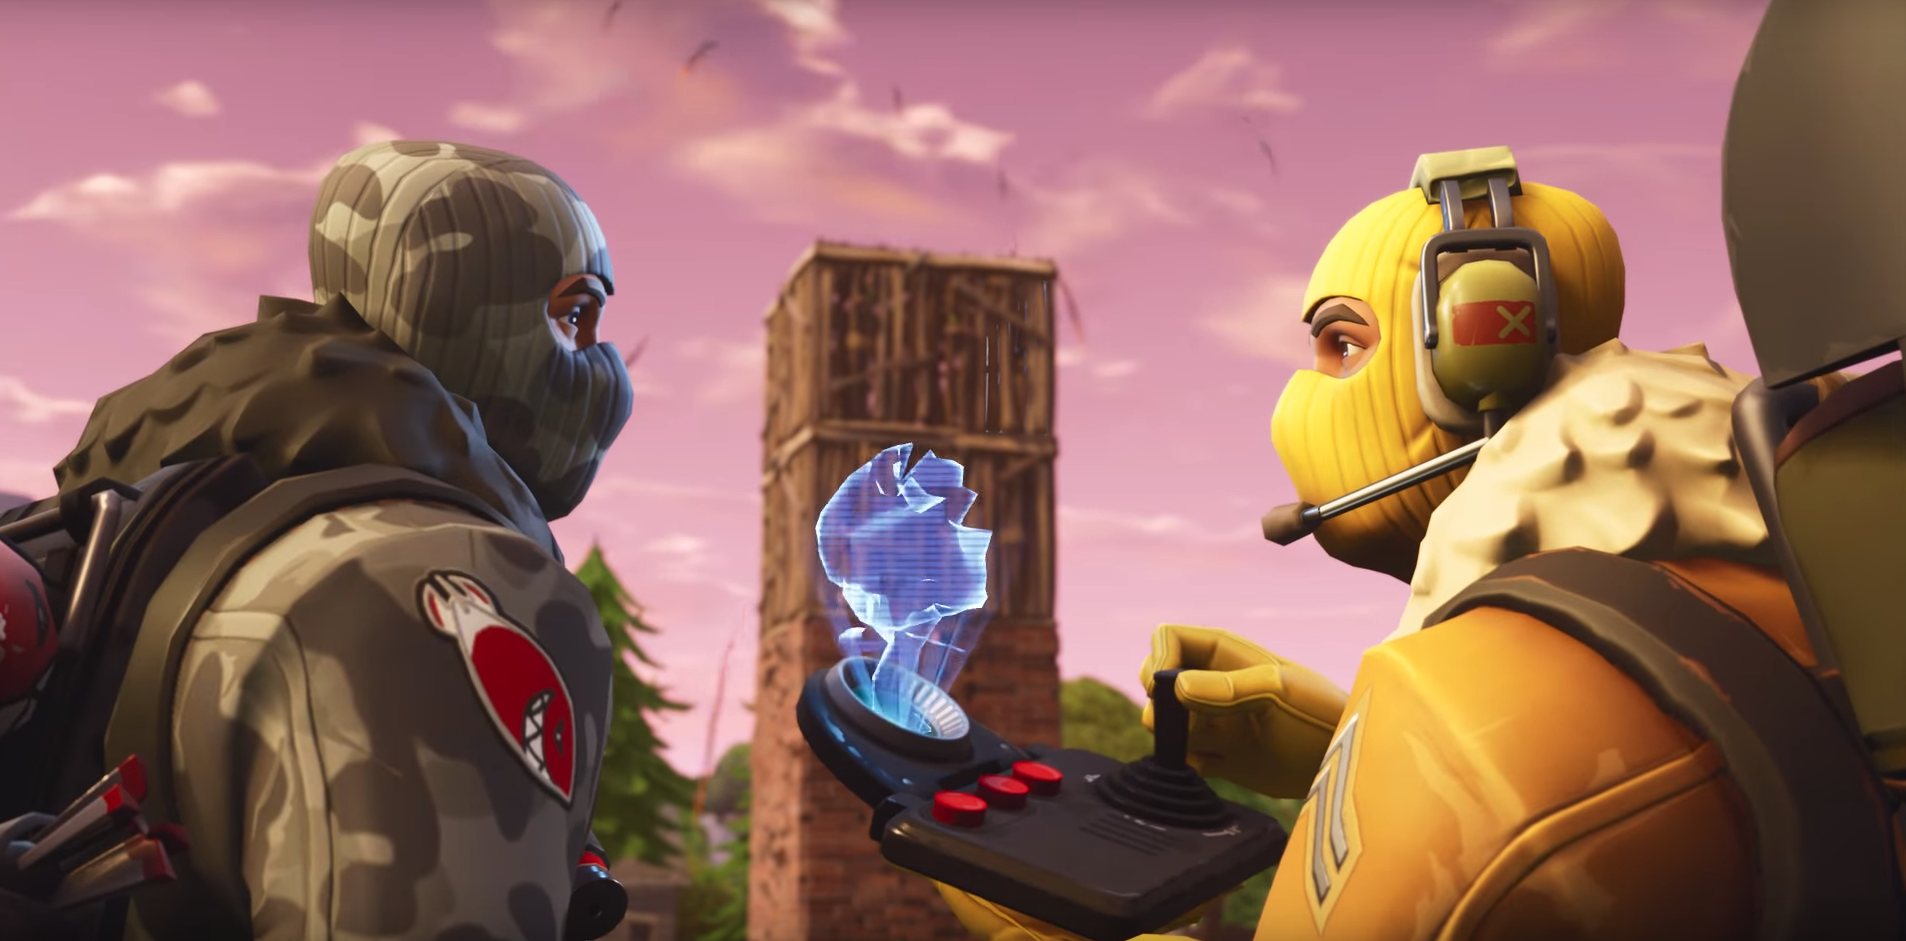 Fortnite Players Are Rocket-Riding New Guided Missiles For Absurd Kills